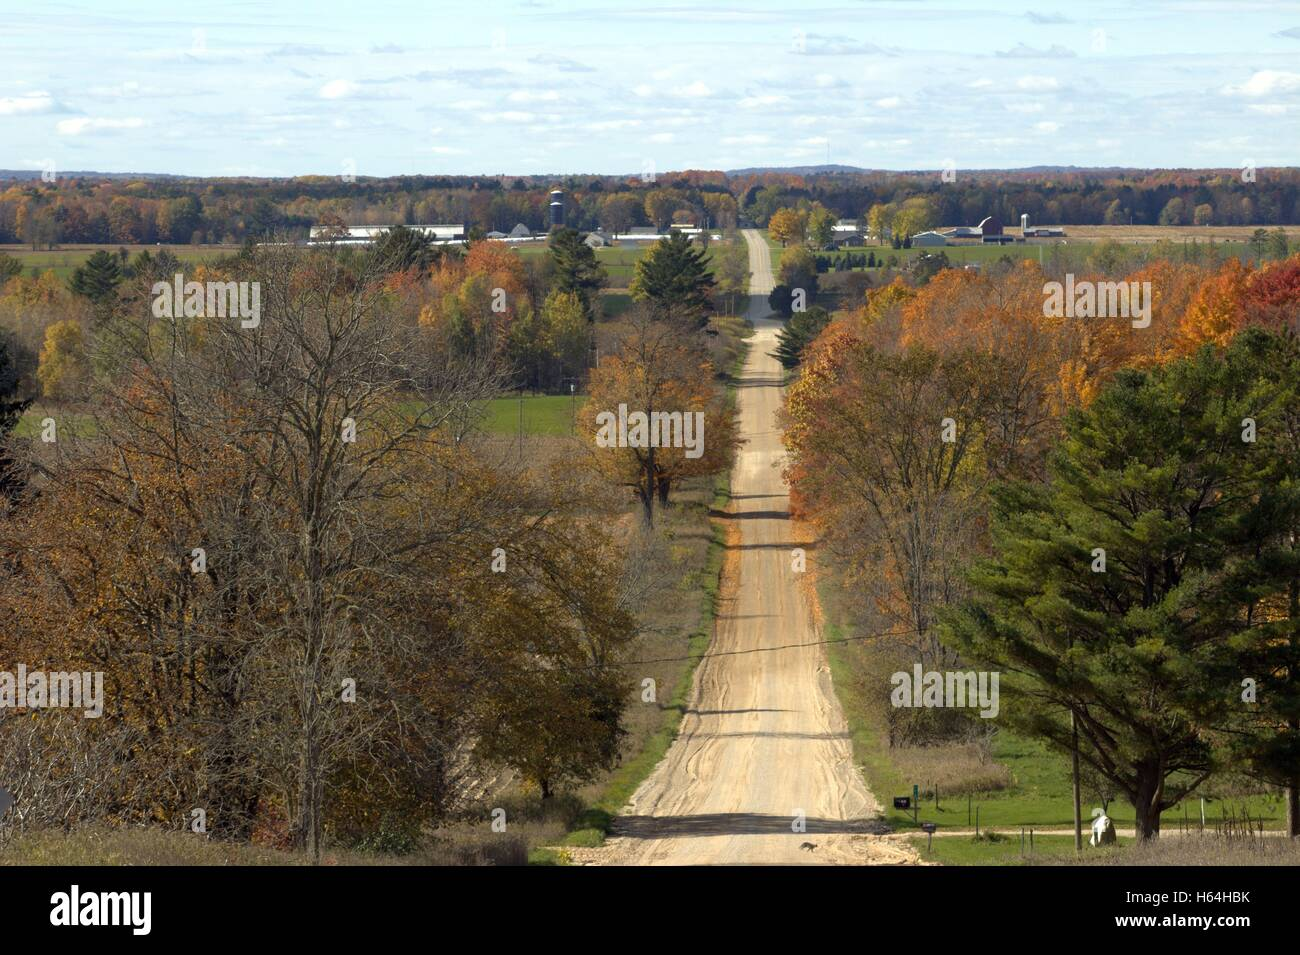 Looking West Down The Dirt Road From 7 Mile Hill in Autumn, Missaukee County, Michigan - Stock Image